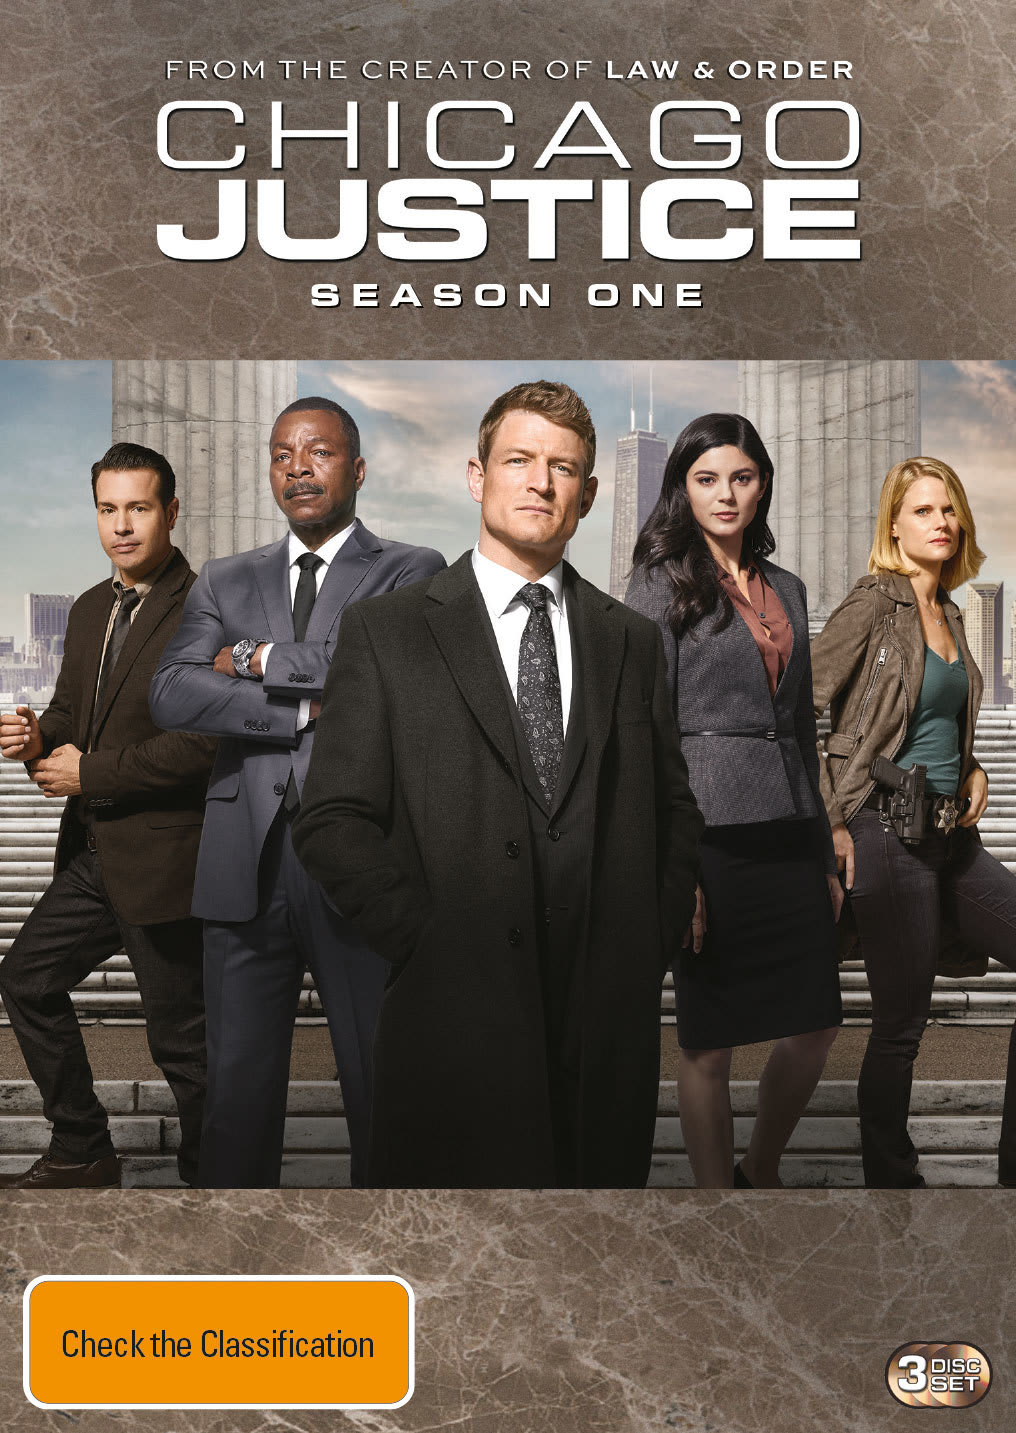 Chicago Justice: Season One (Box Set) [DVD]